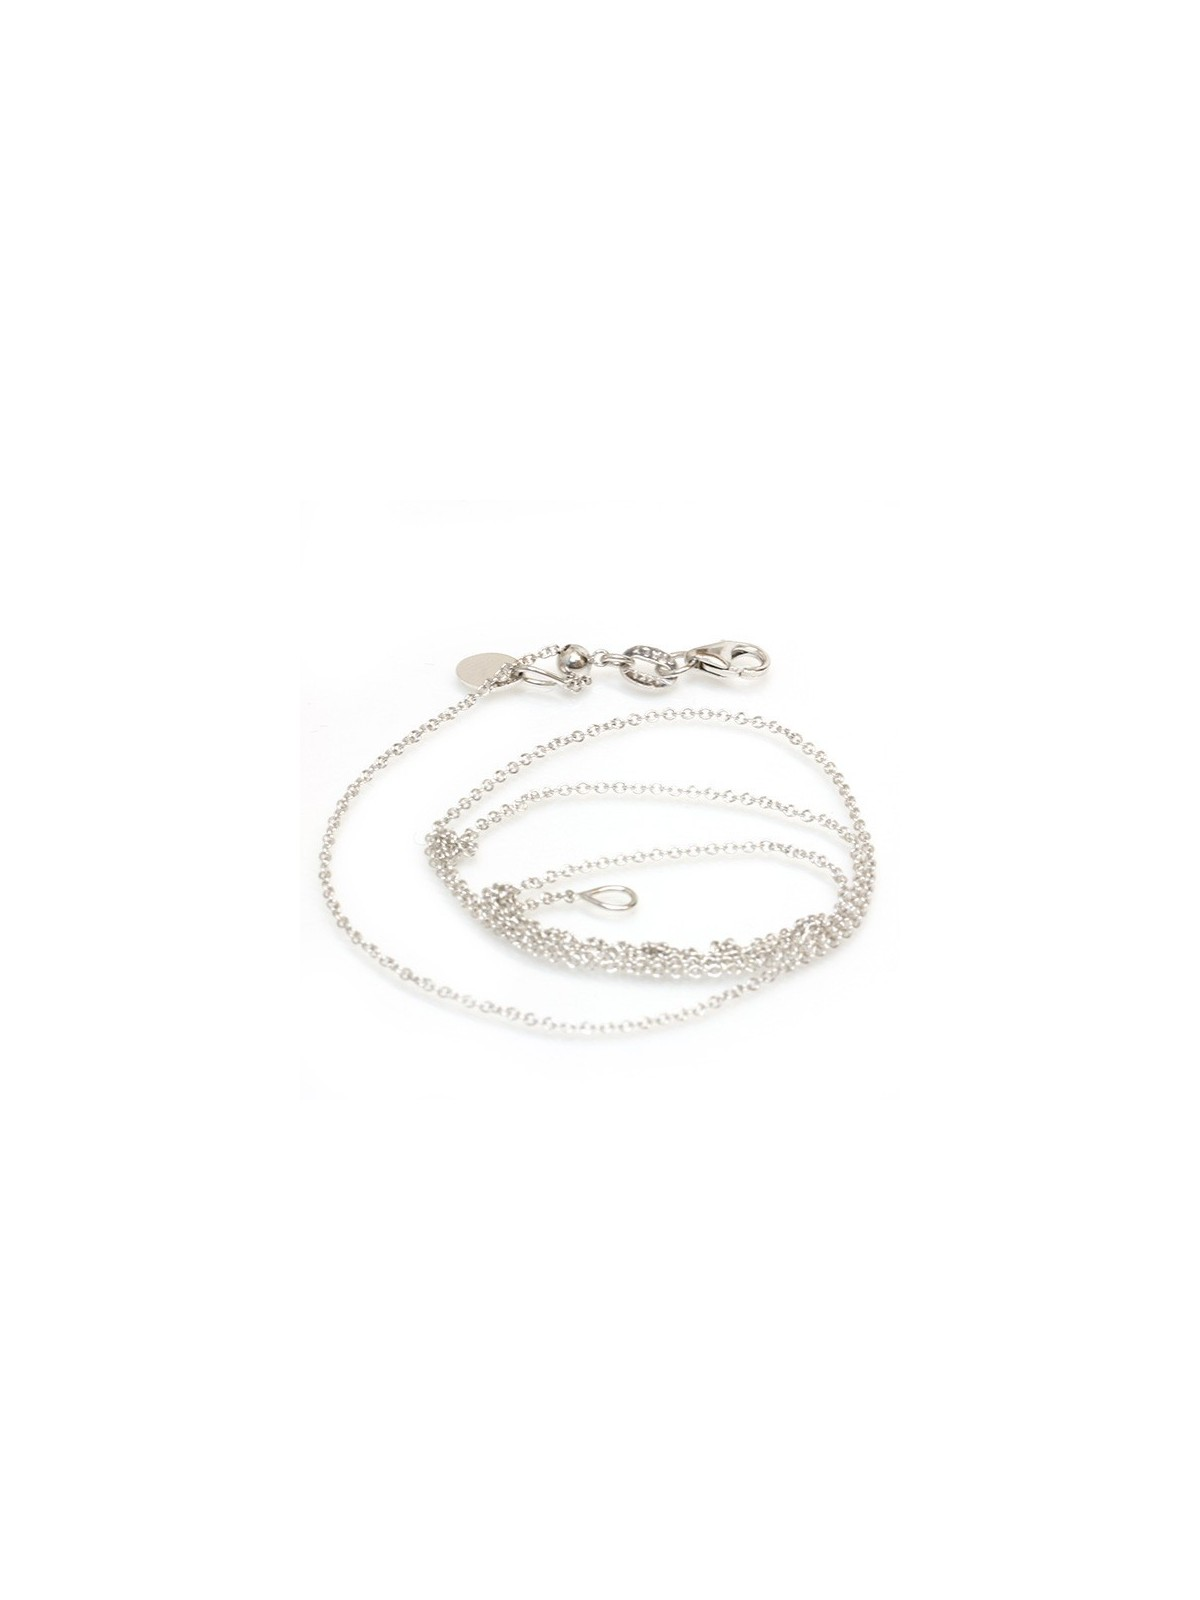 Chaine ajustable Or 14 carats Moea Perles - 1